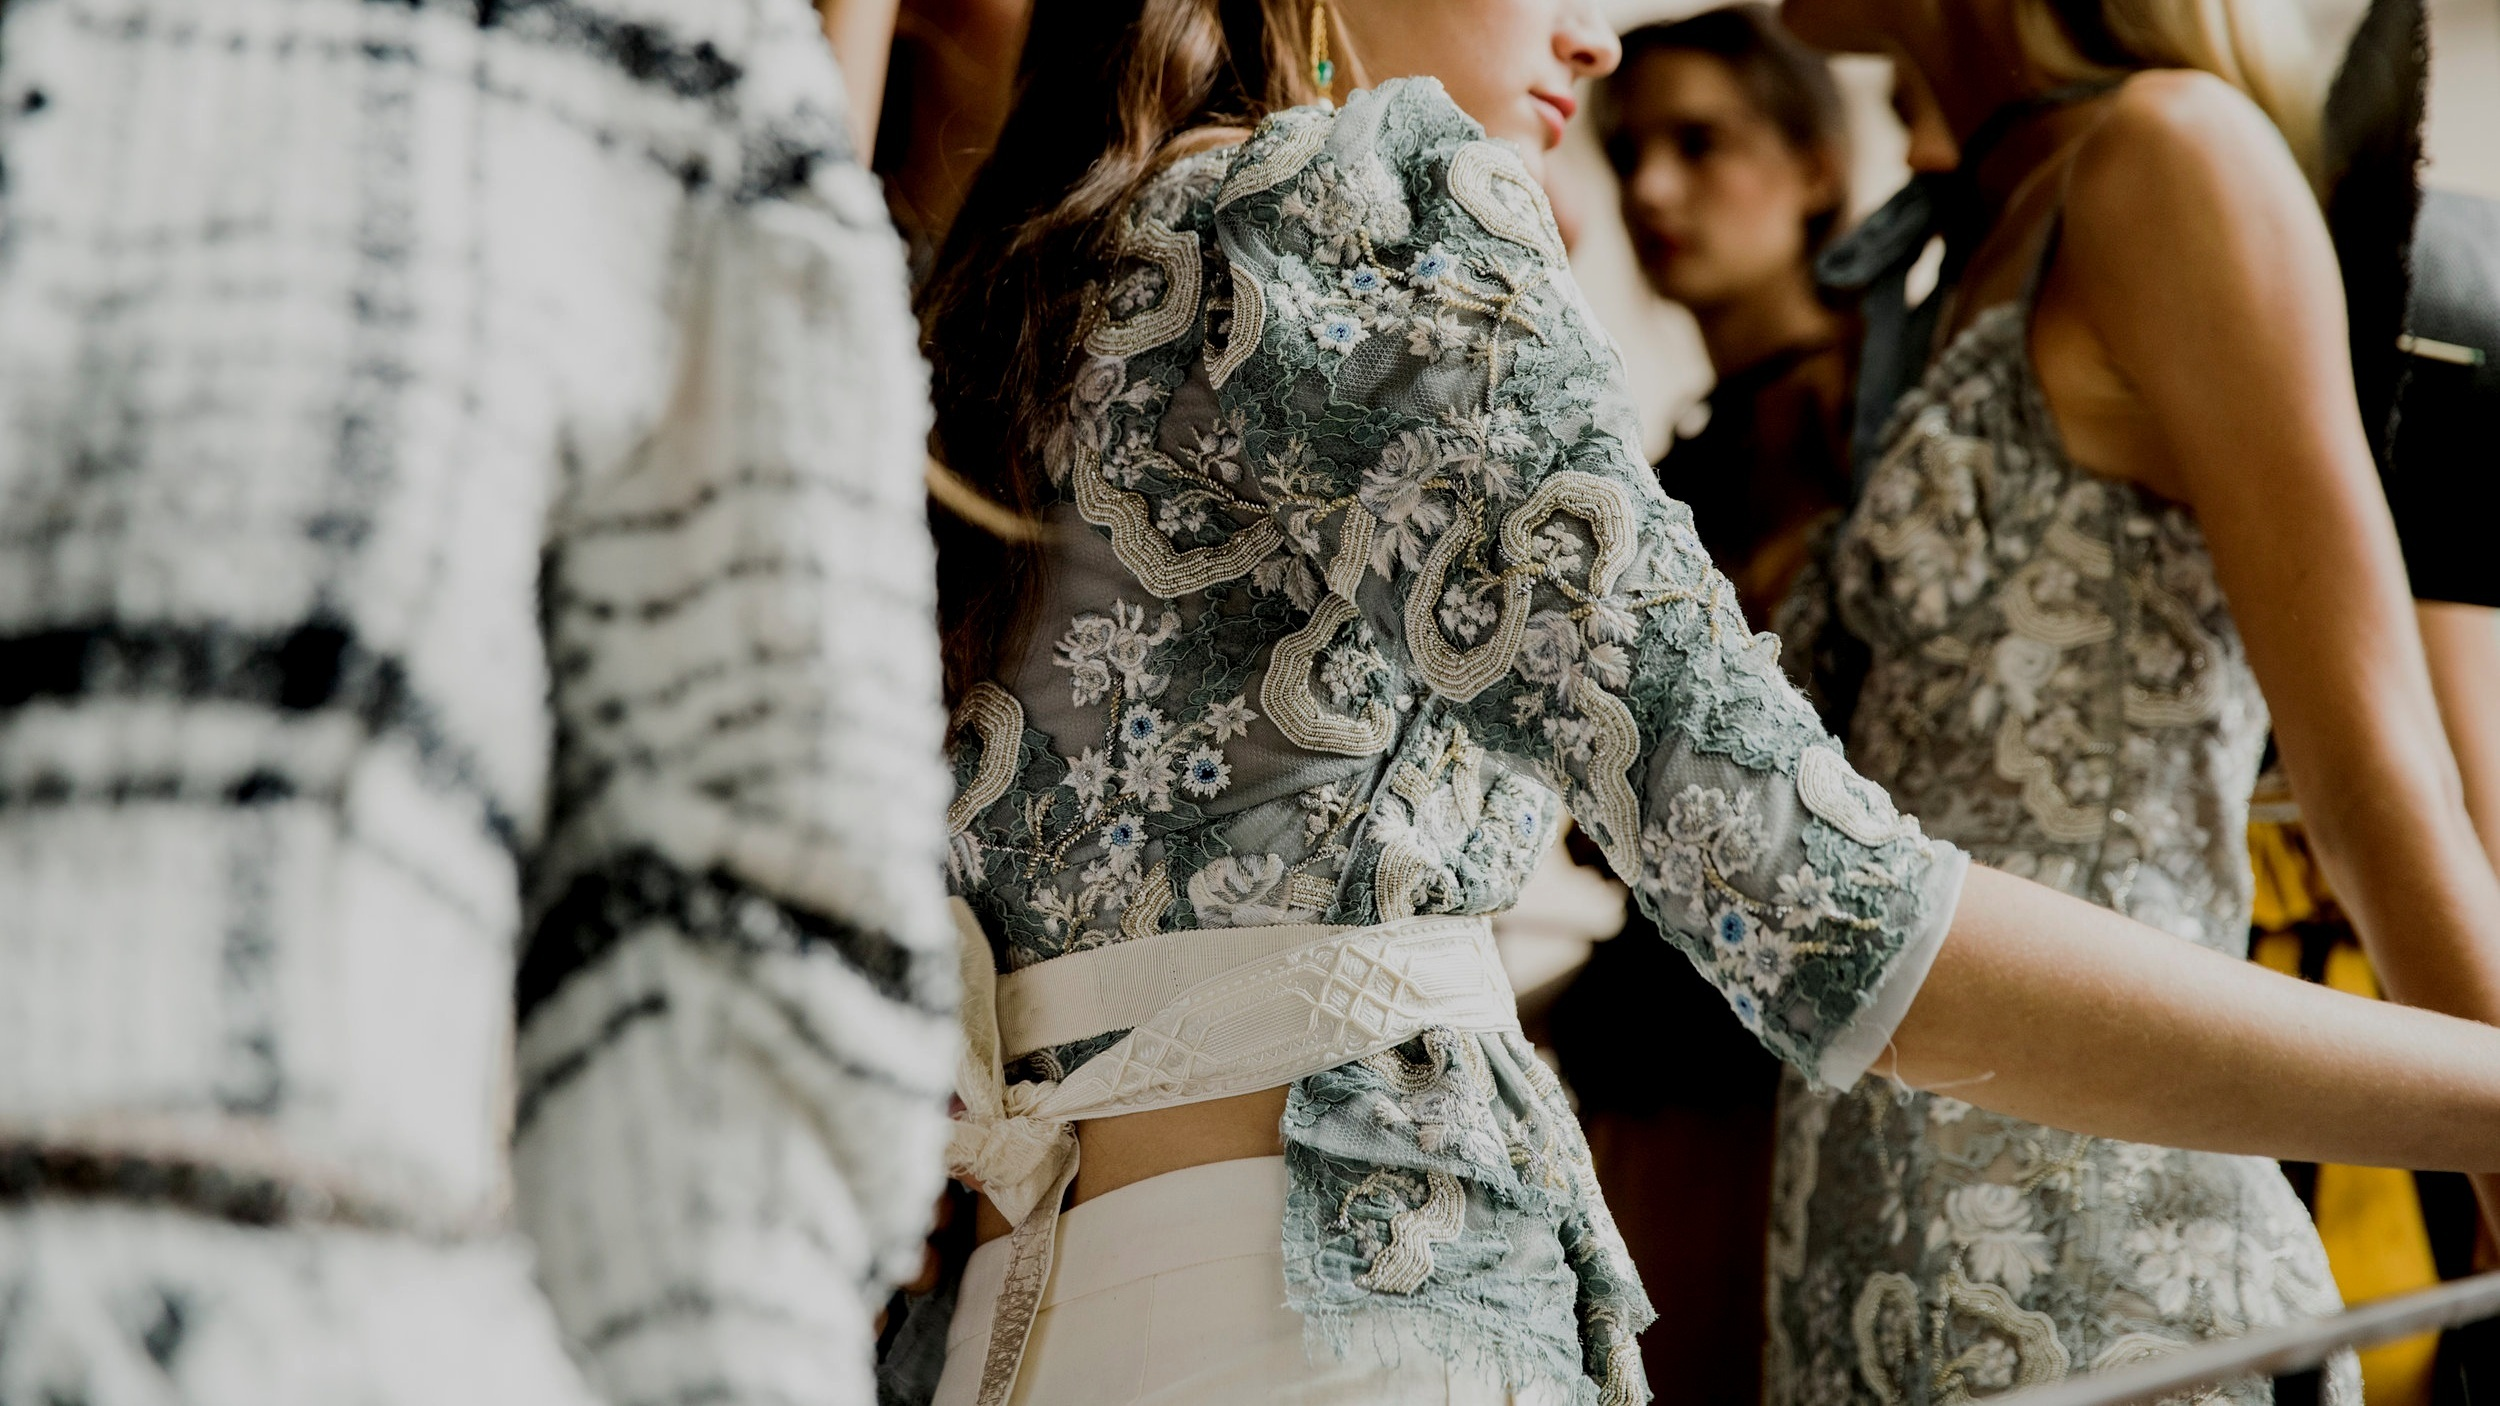 FASHION - From fashion shows to individual designer representation, to cultivating the right network and forging meaningful relationships that matter, BPCM is a trusted partner every step of the way.